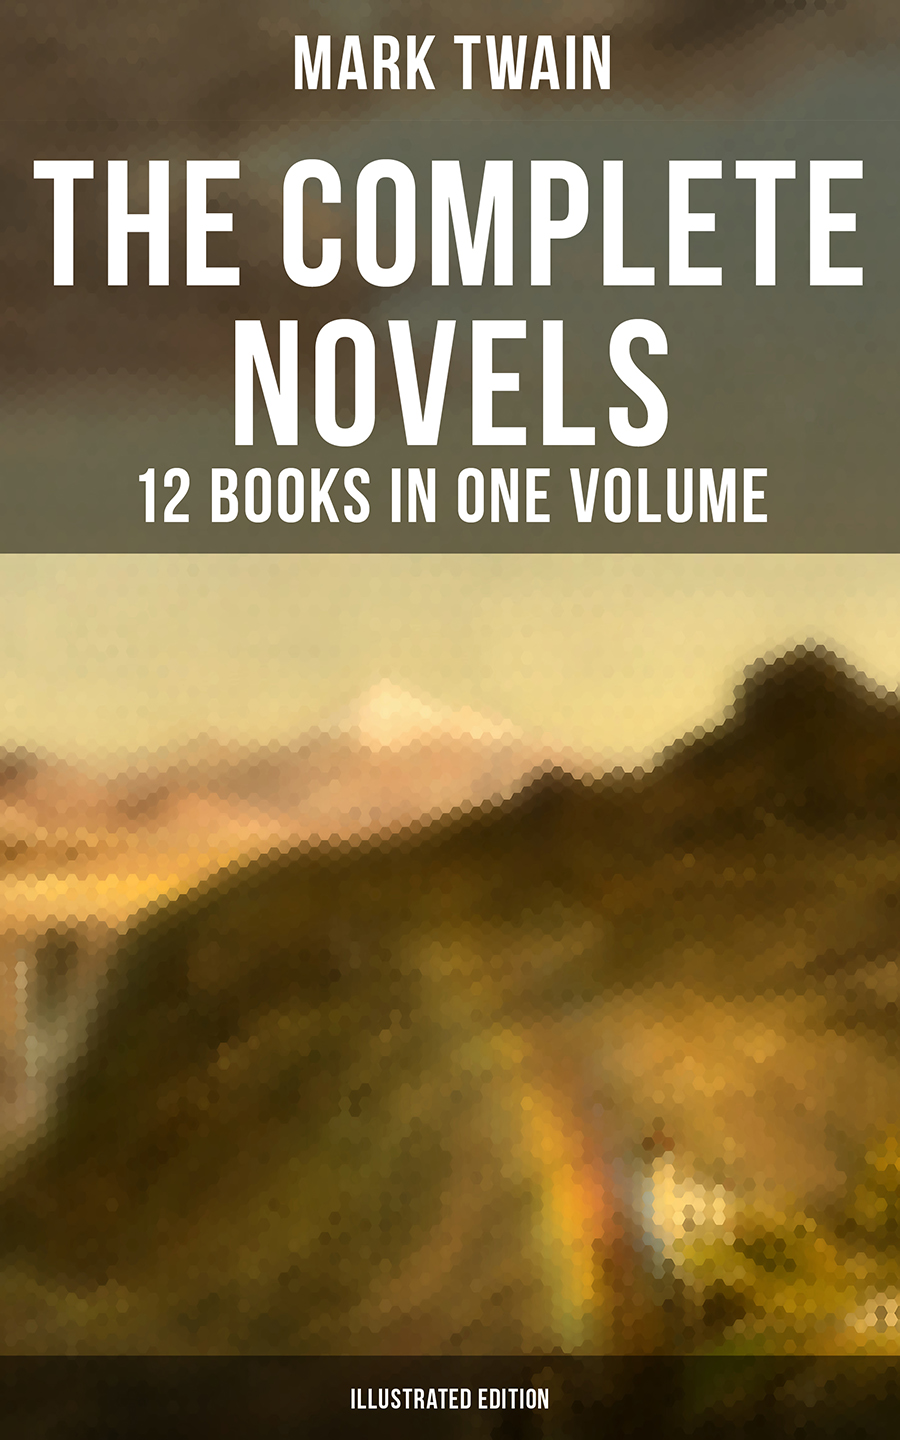 Mark twain The Complete Novels of Mark Twain - 12 Books in One Volume (Illustrated Edition)